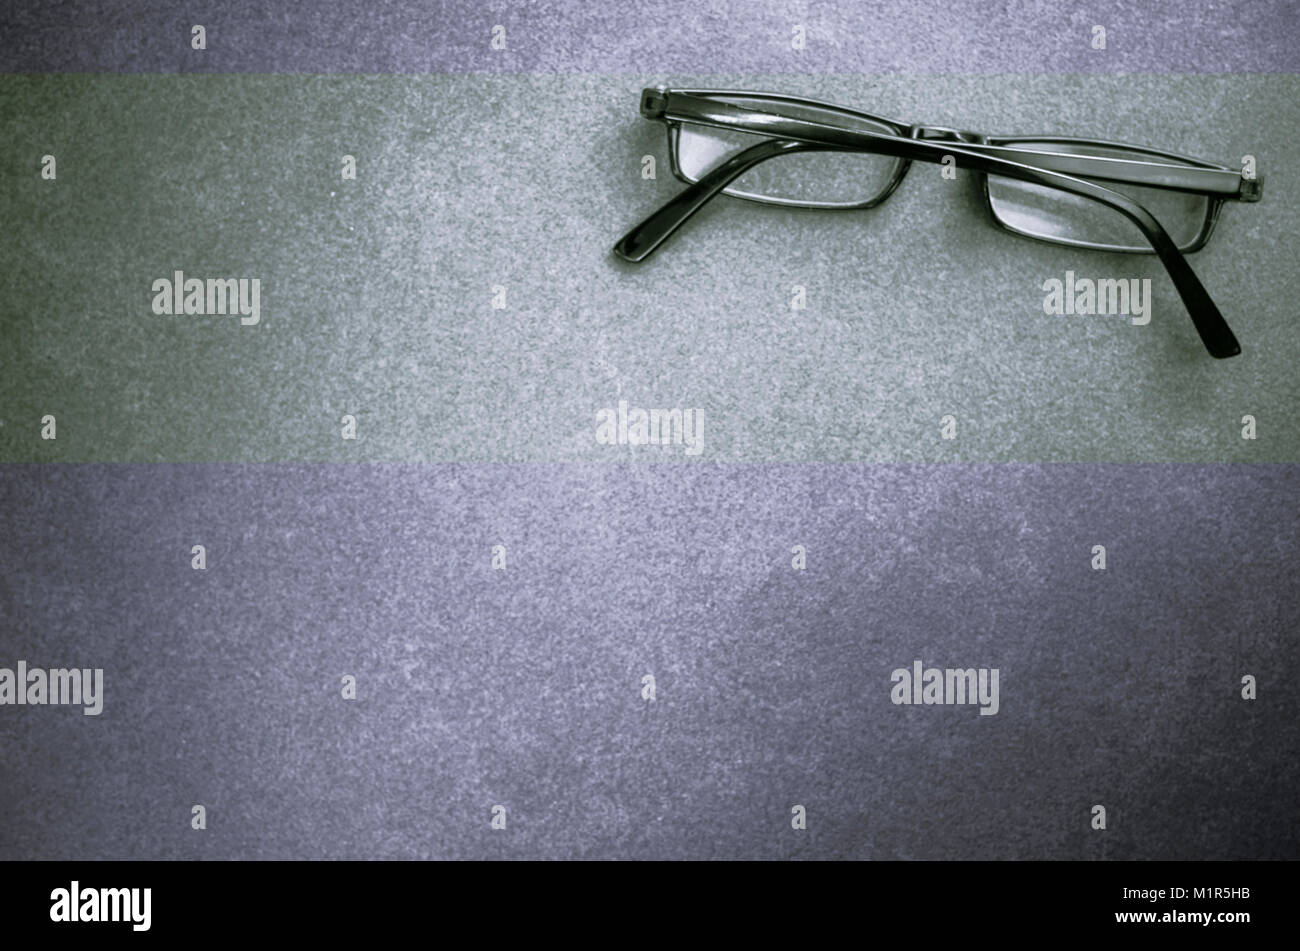 closed eyeglasses on a dark stone surface - top view Stock Photo